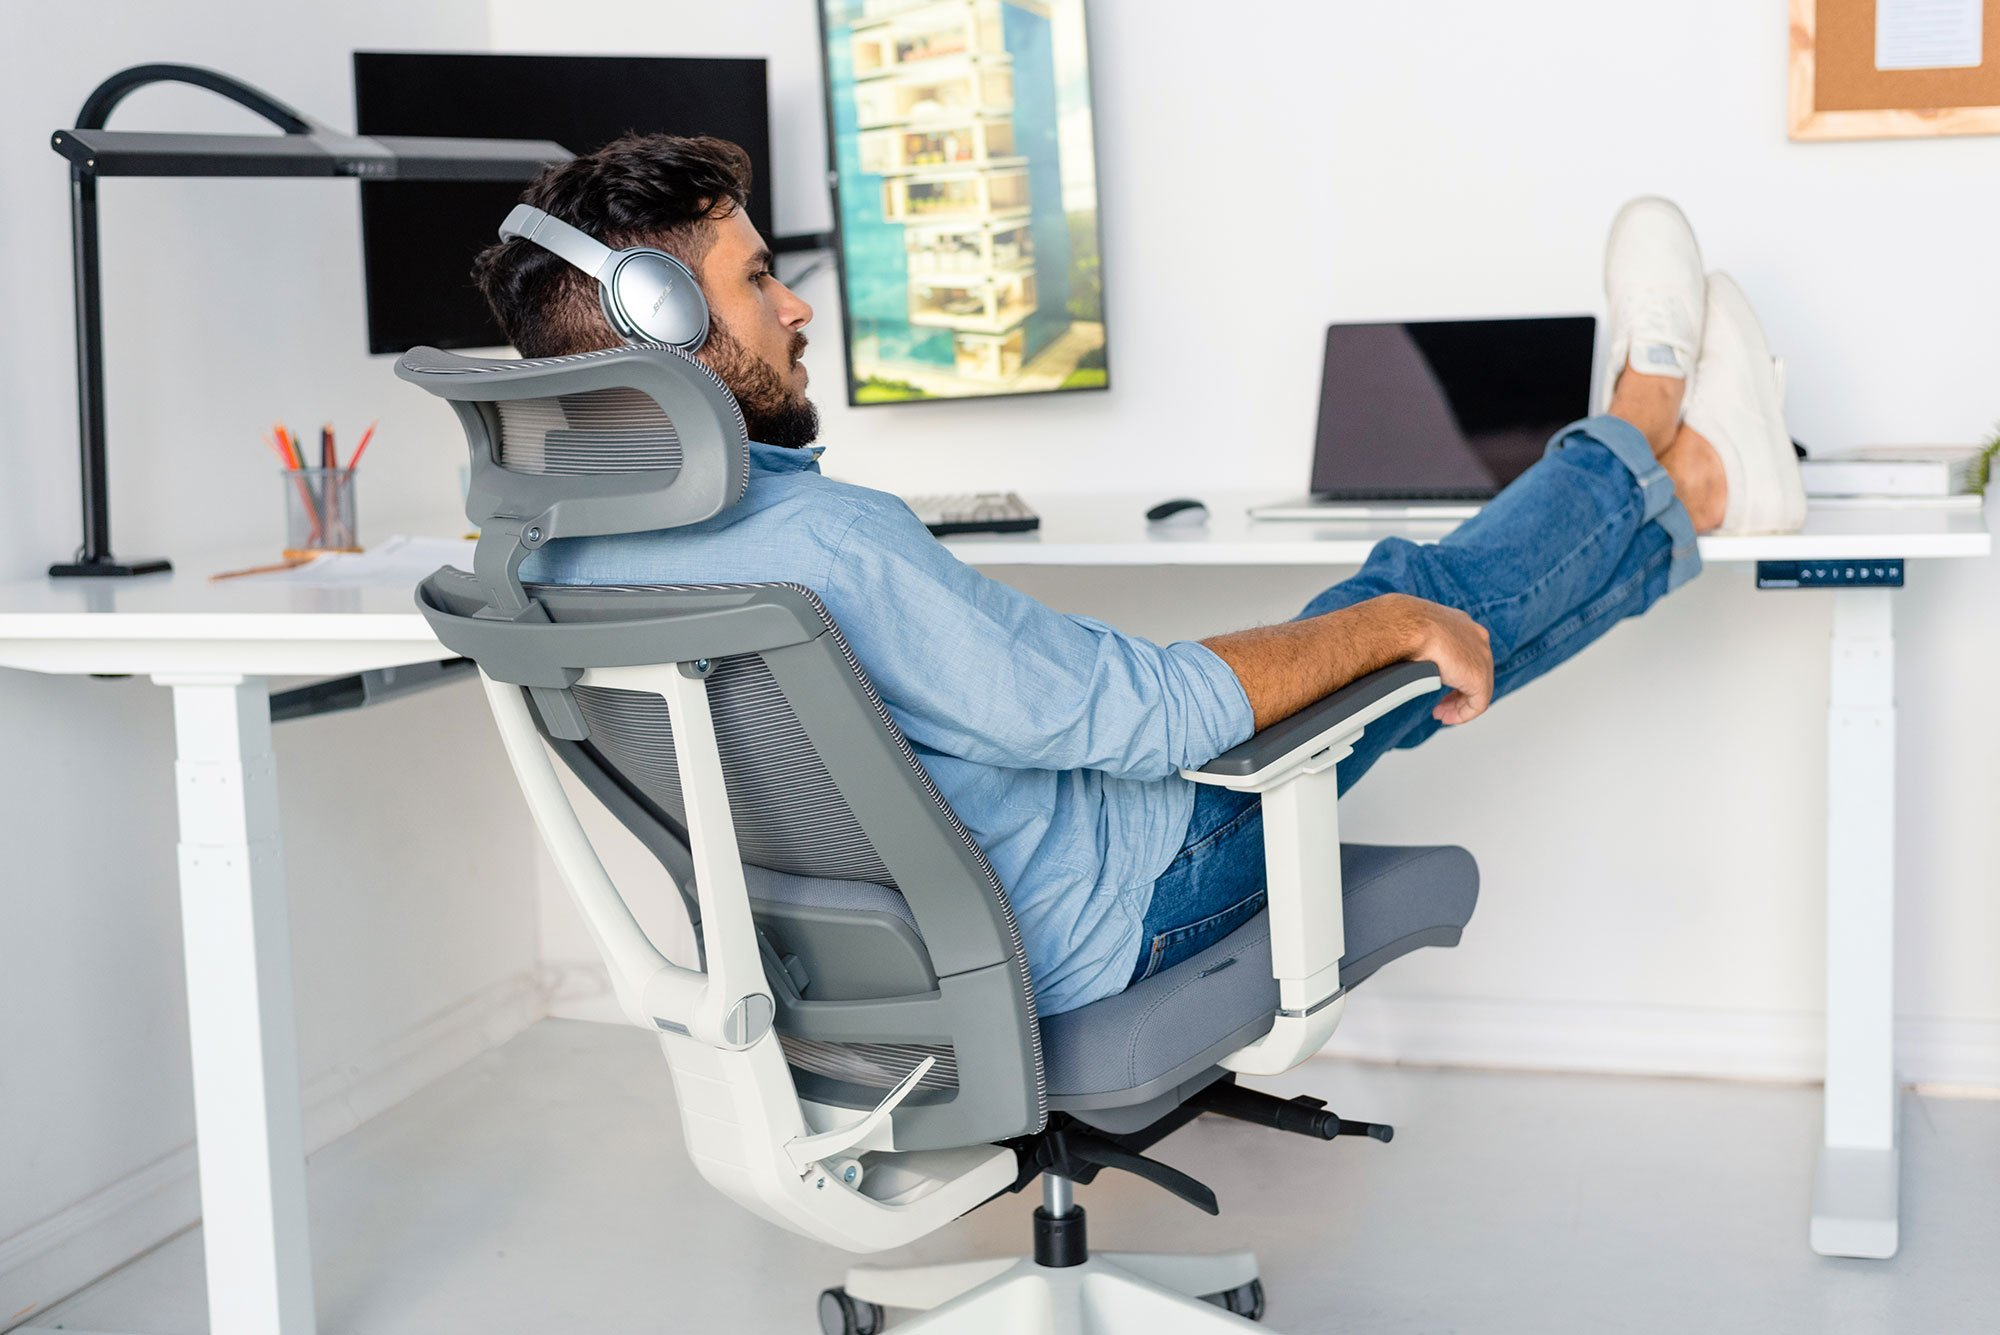 ErgoChair Pro | The Ergonomic Chair that Supports Your Entire Body